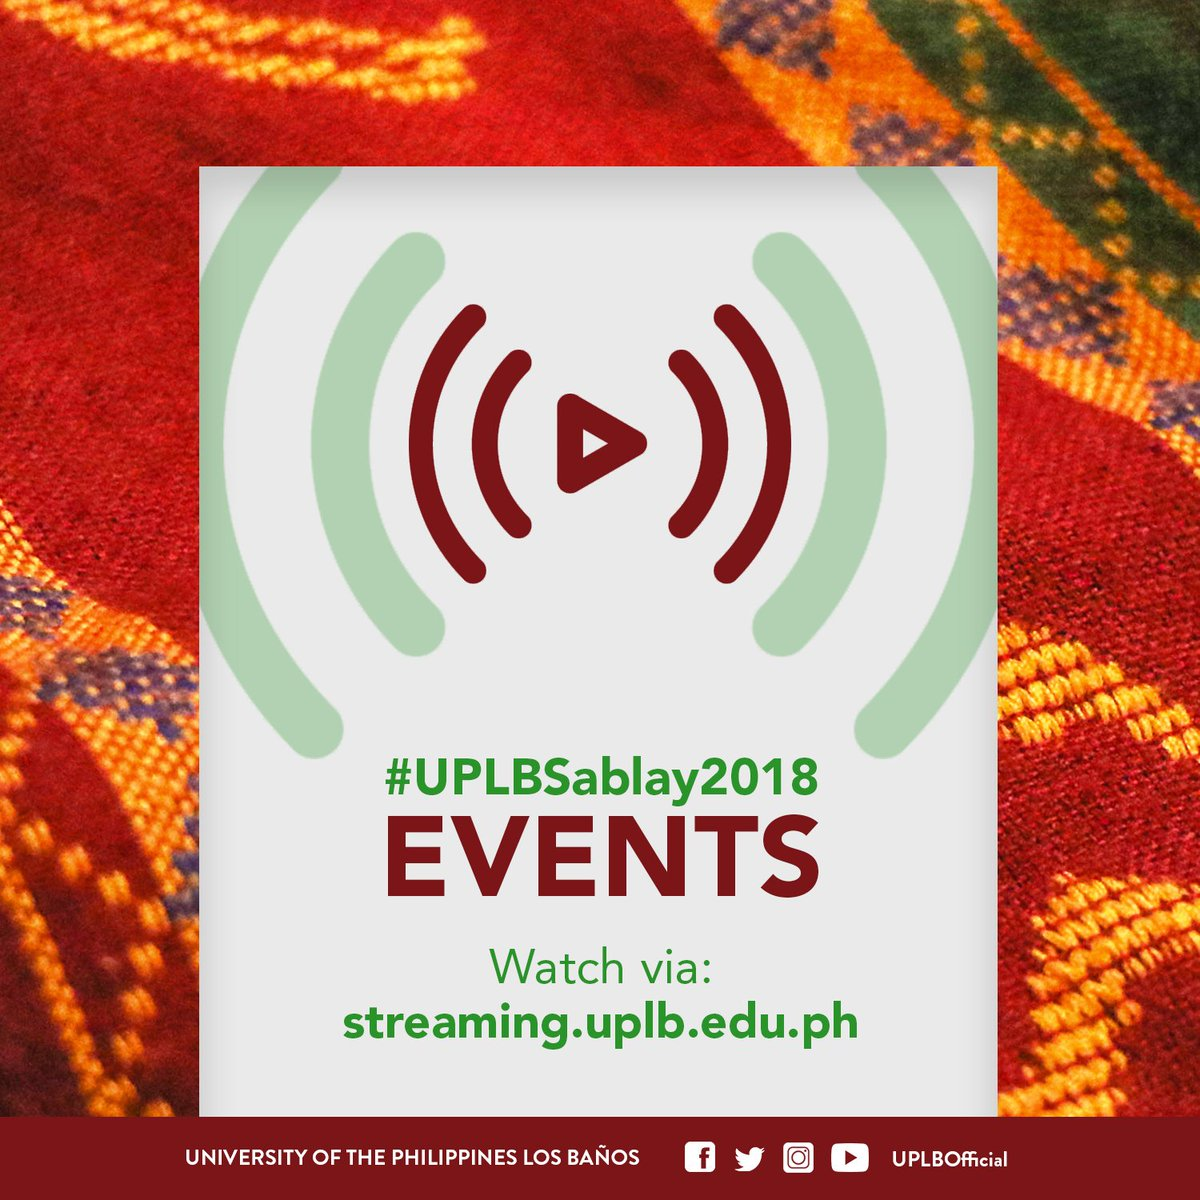 Banos Online.Up Los Banos On Twitter Watch The Uplbsablay2018 Events